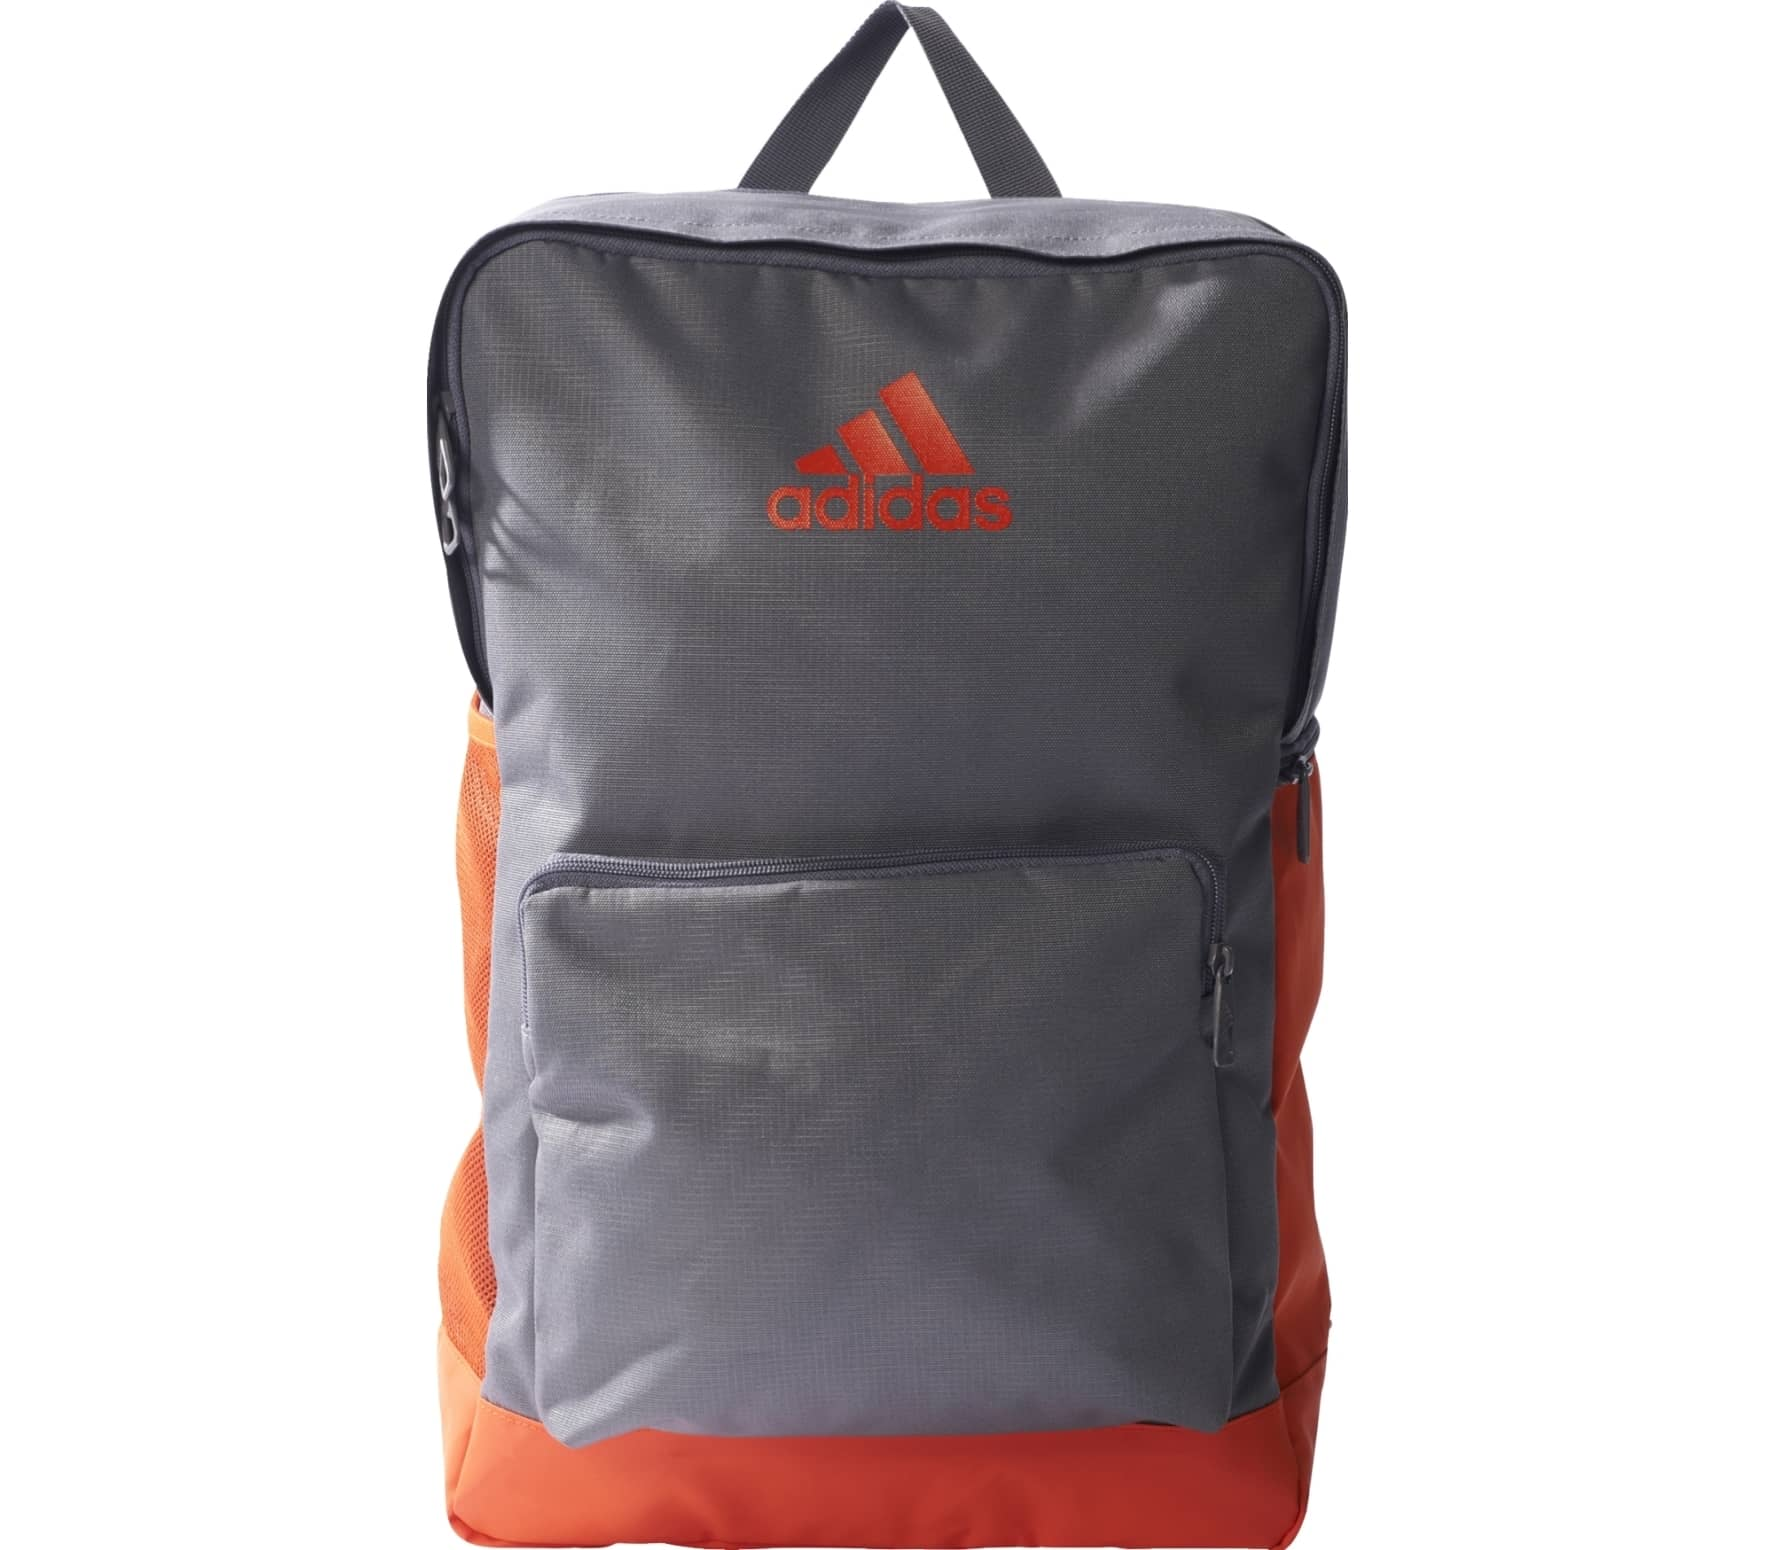 ec293ac54d9 Adidas - 3S Performance Backpack (grey orange) - buy it at the ...